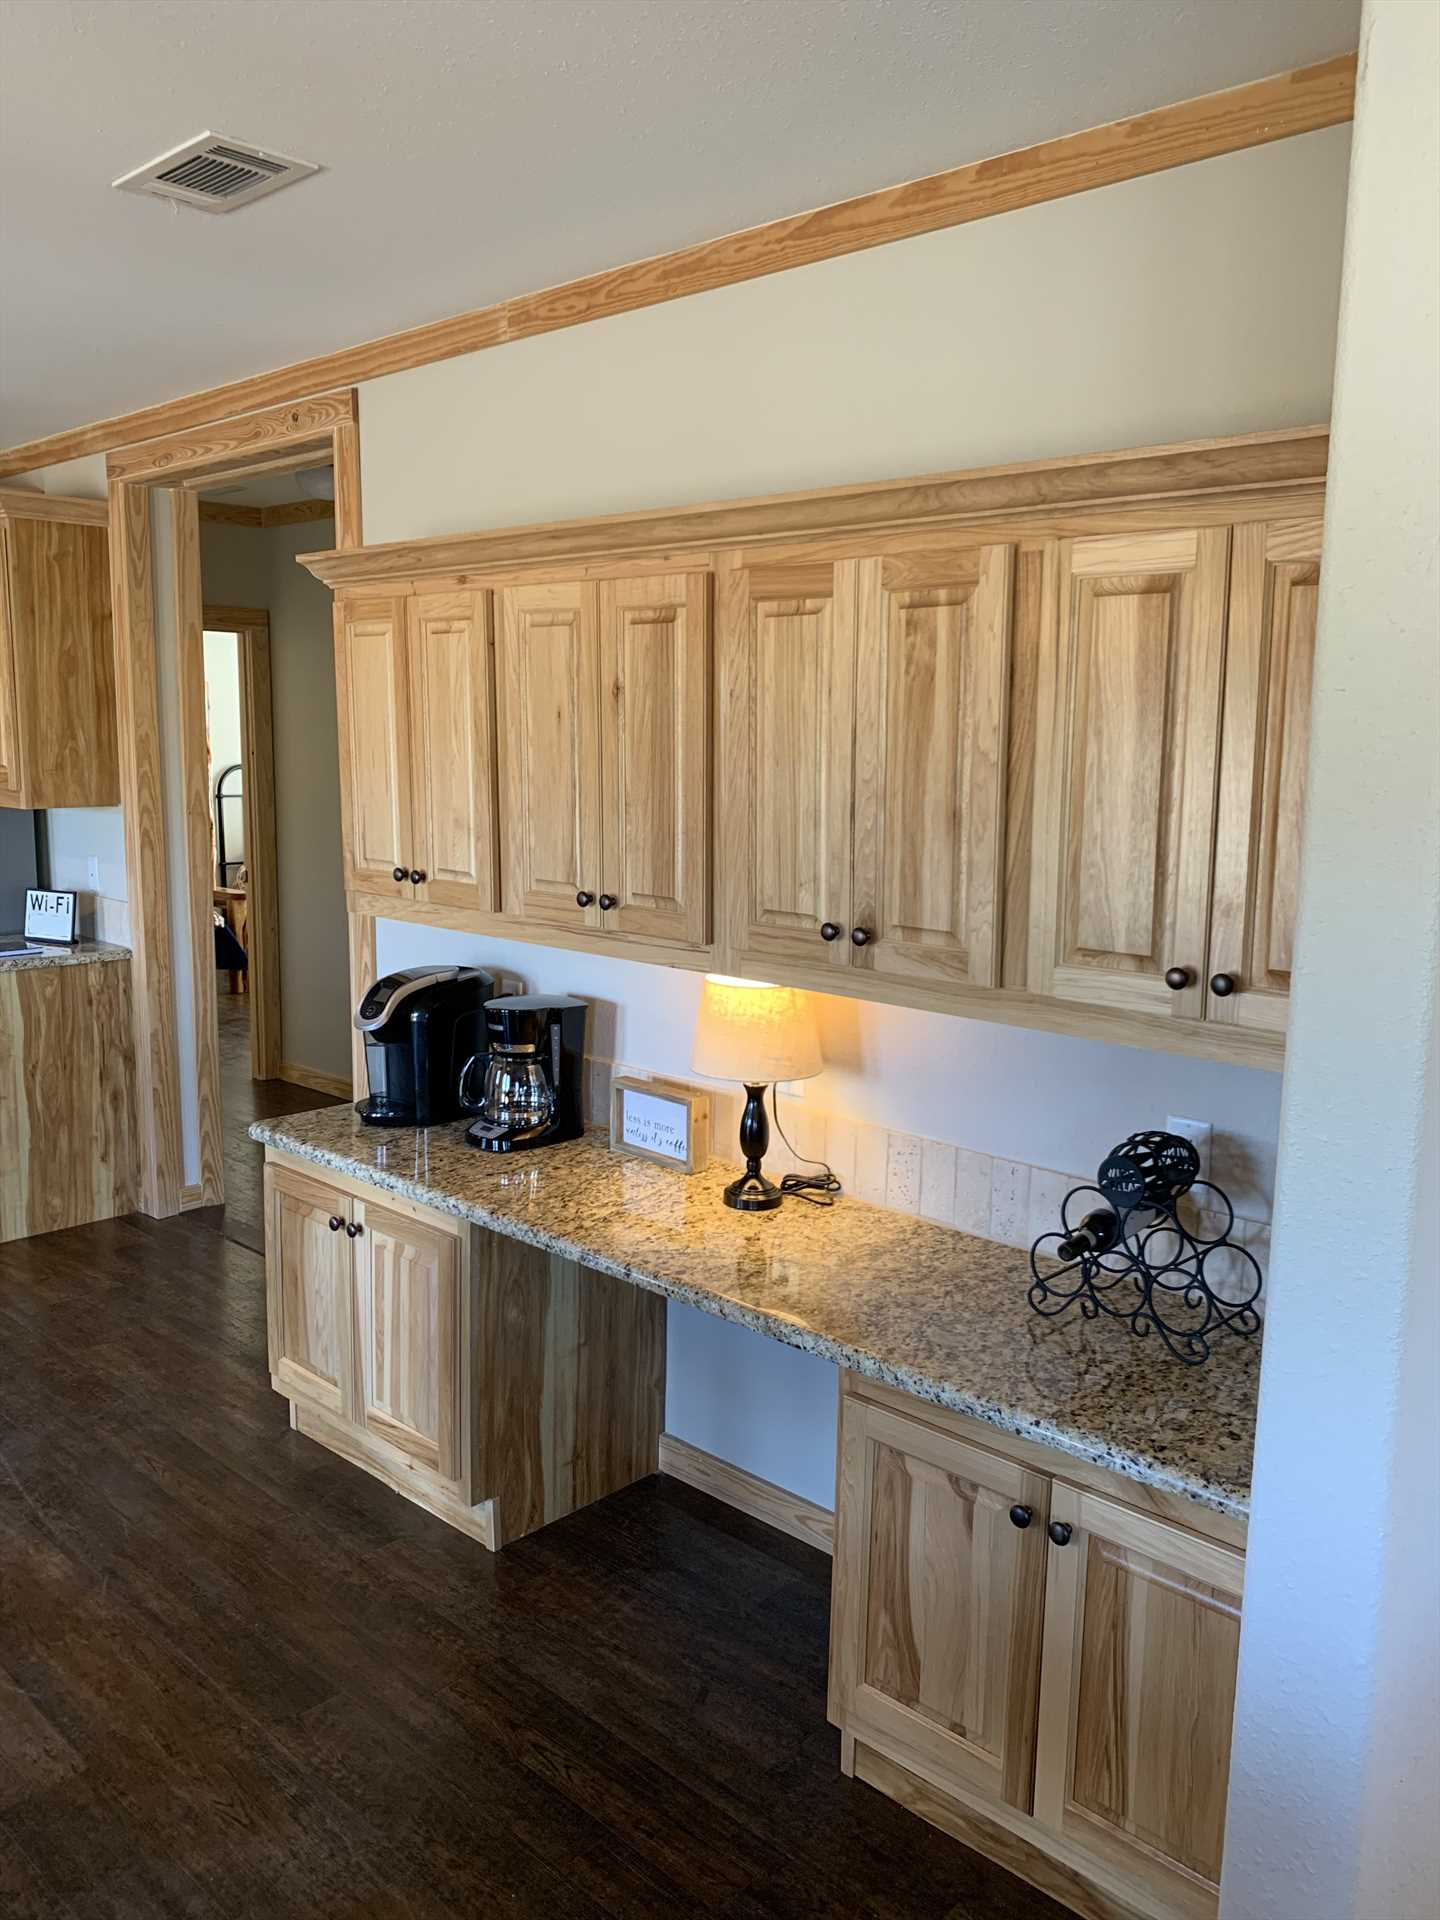 The fully-stocked kitchen (with two types of coffee makers!) includes a cozy dining nook.